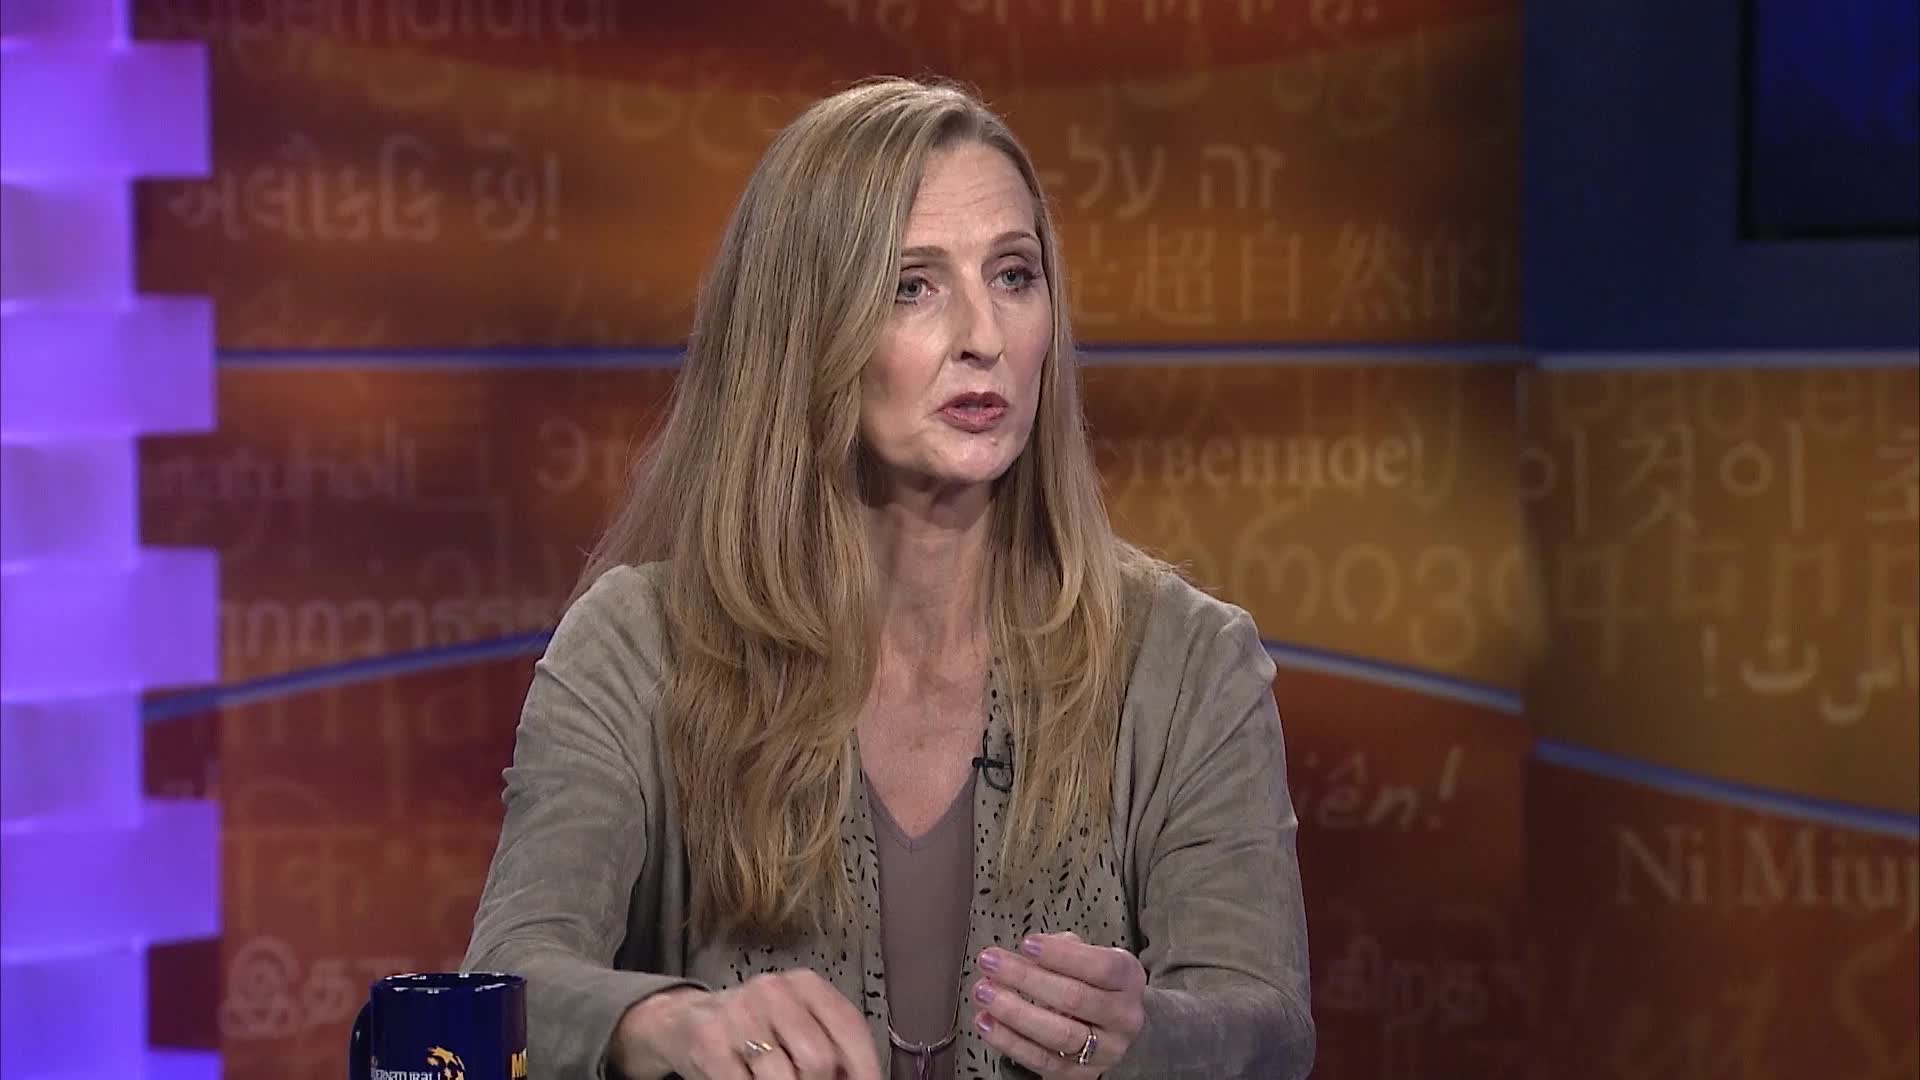 Cindy Jacobs - It's Supernatural! with Sid Roth - Watch